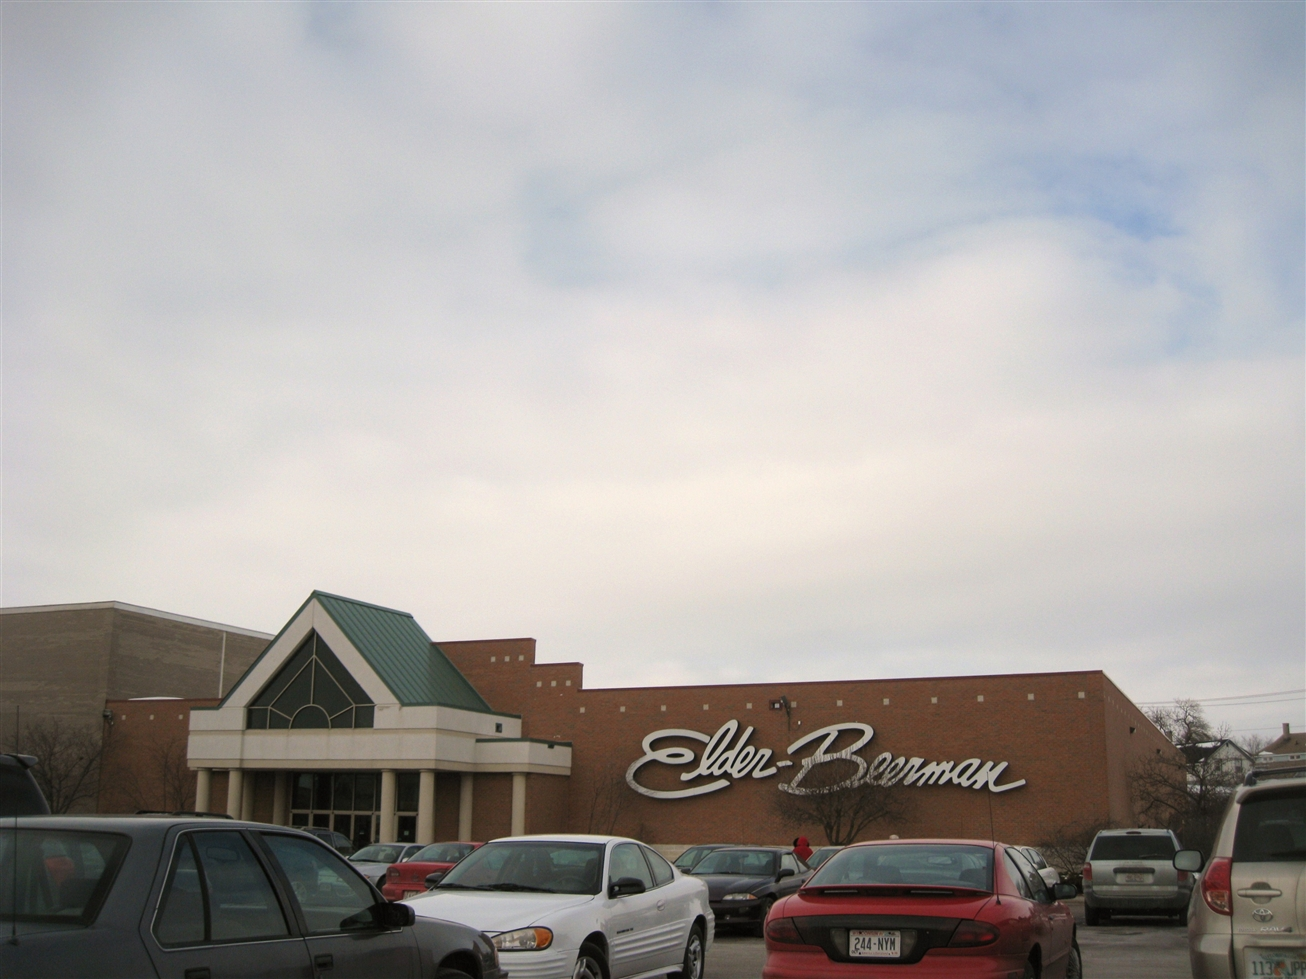 Beloit Mall (Eclipse Center) Elder Beerman in Beloit, WI